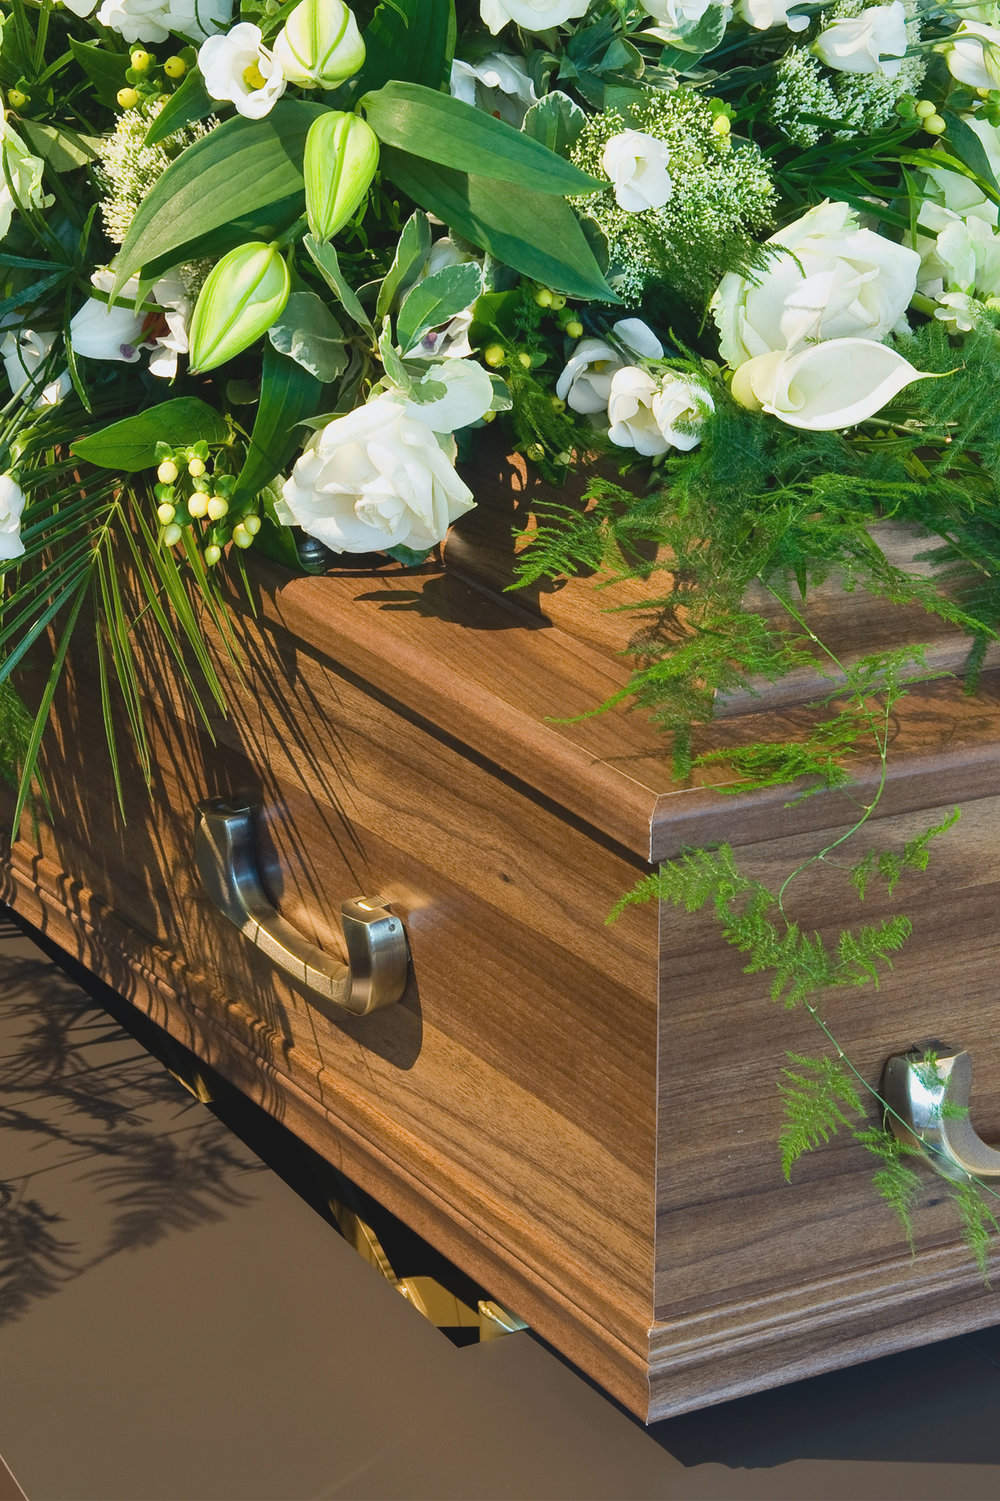 Funerals - We host funerals, memorials and celebrations of life services to remember and celebrate the life of a loved one. Scheduling a funeral or memorial service is subject to the availability of our facilities as well as the availability of our staff and volunteers.Learn More